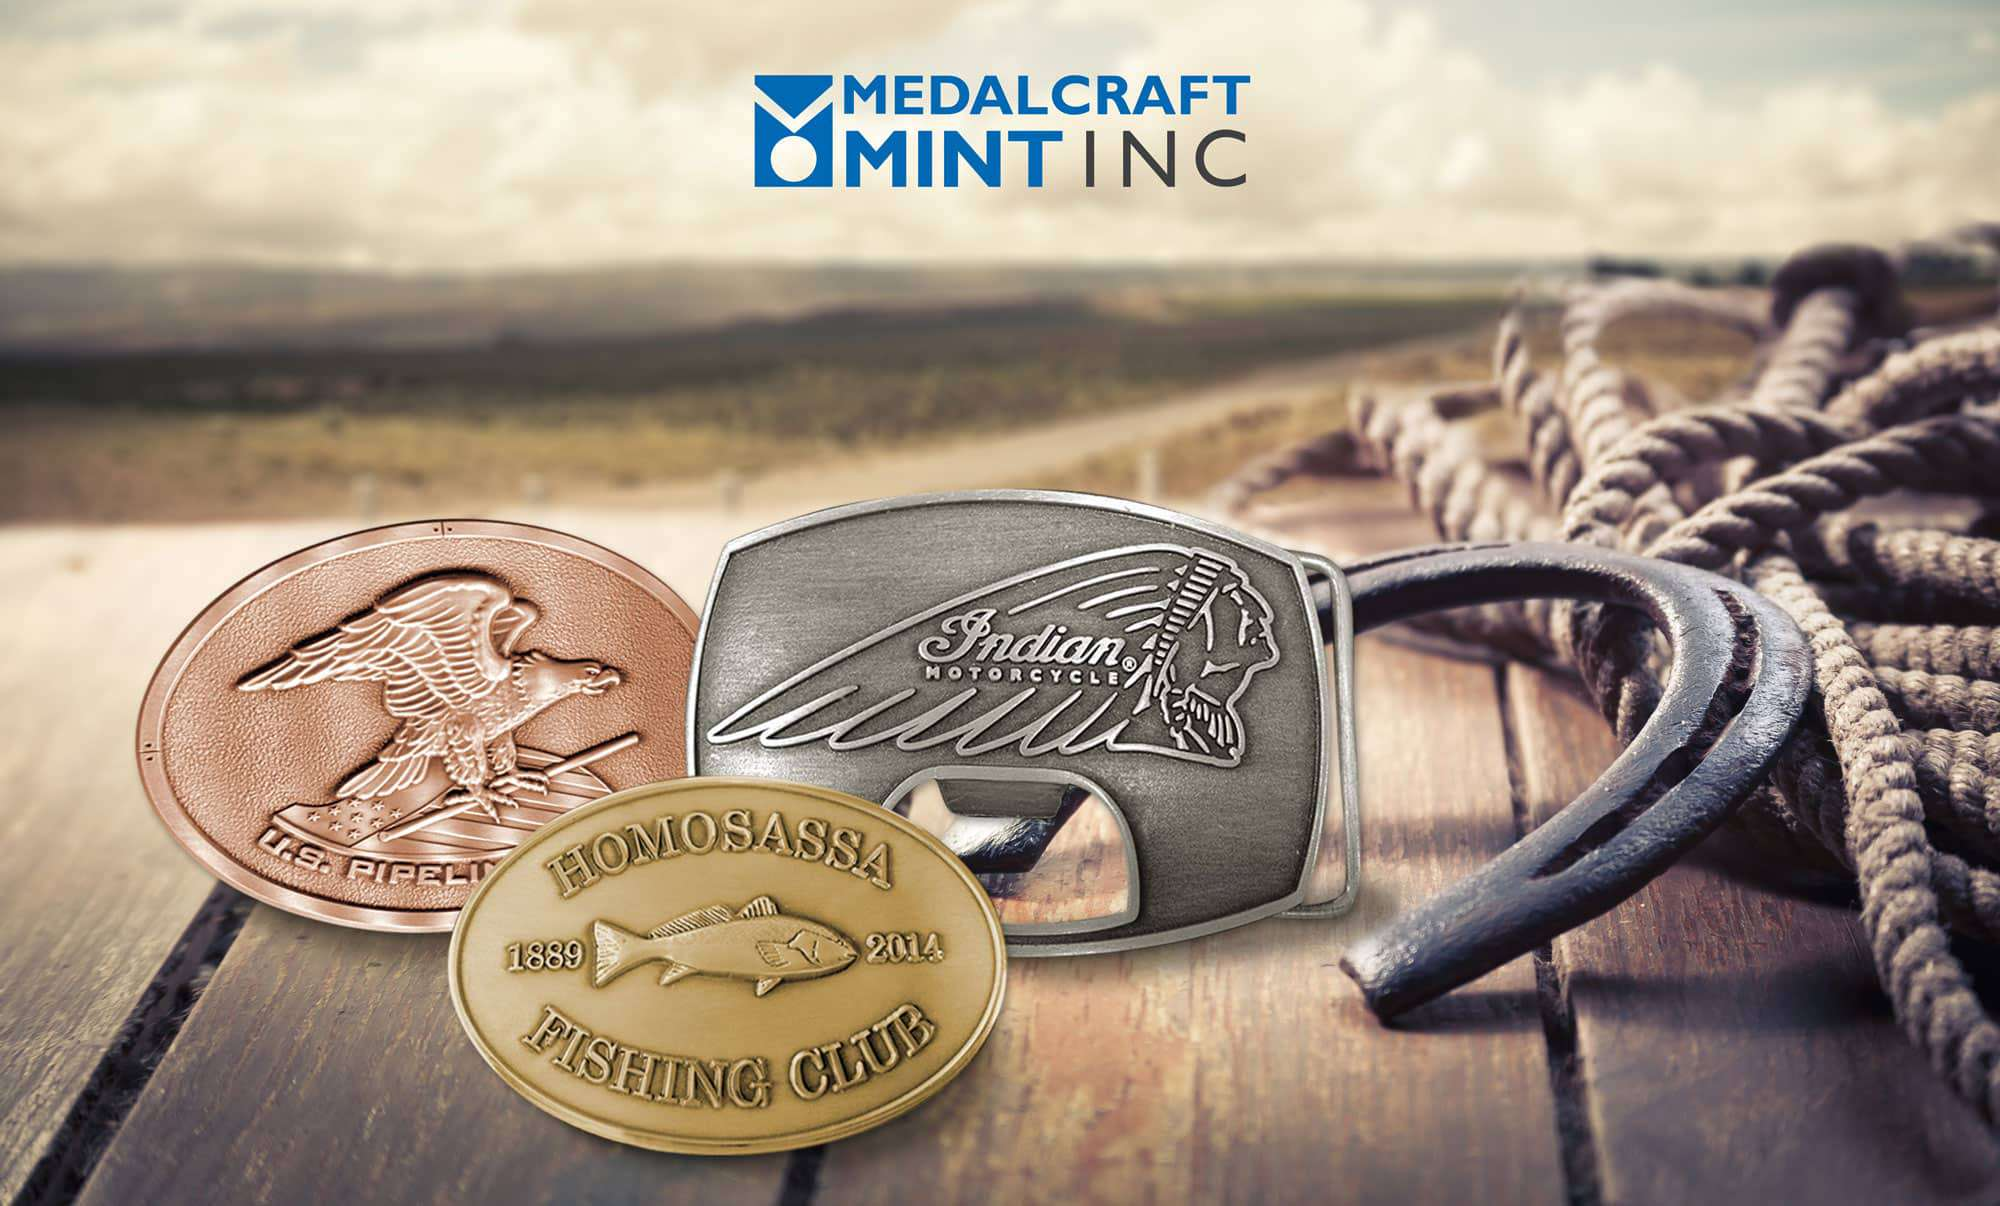 Custom logo belt buckles create a distinguished commemorative